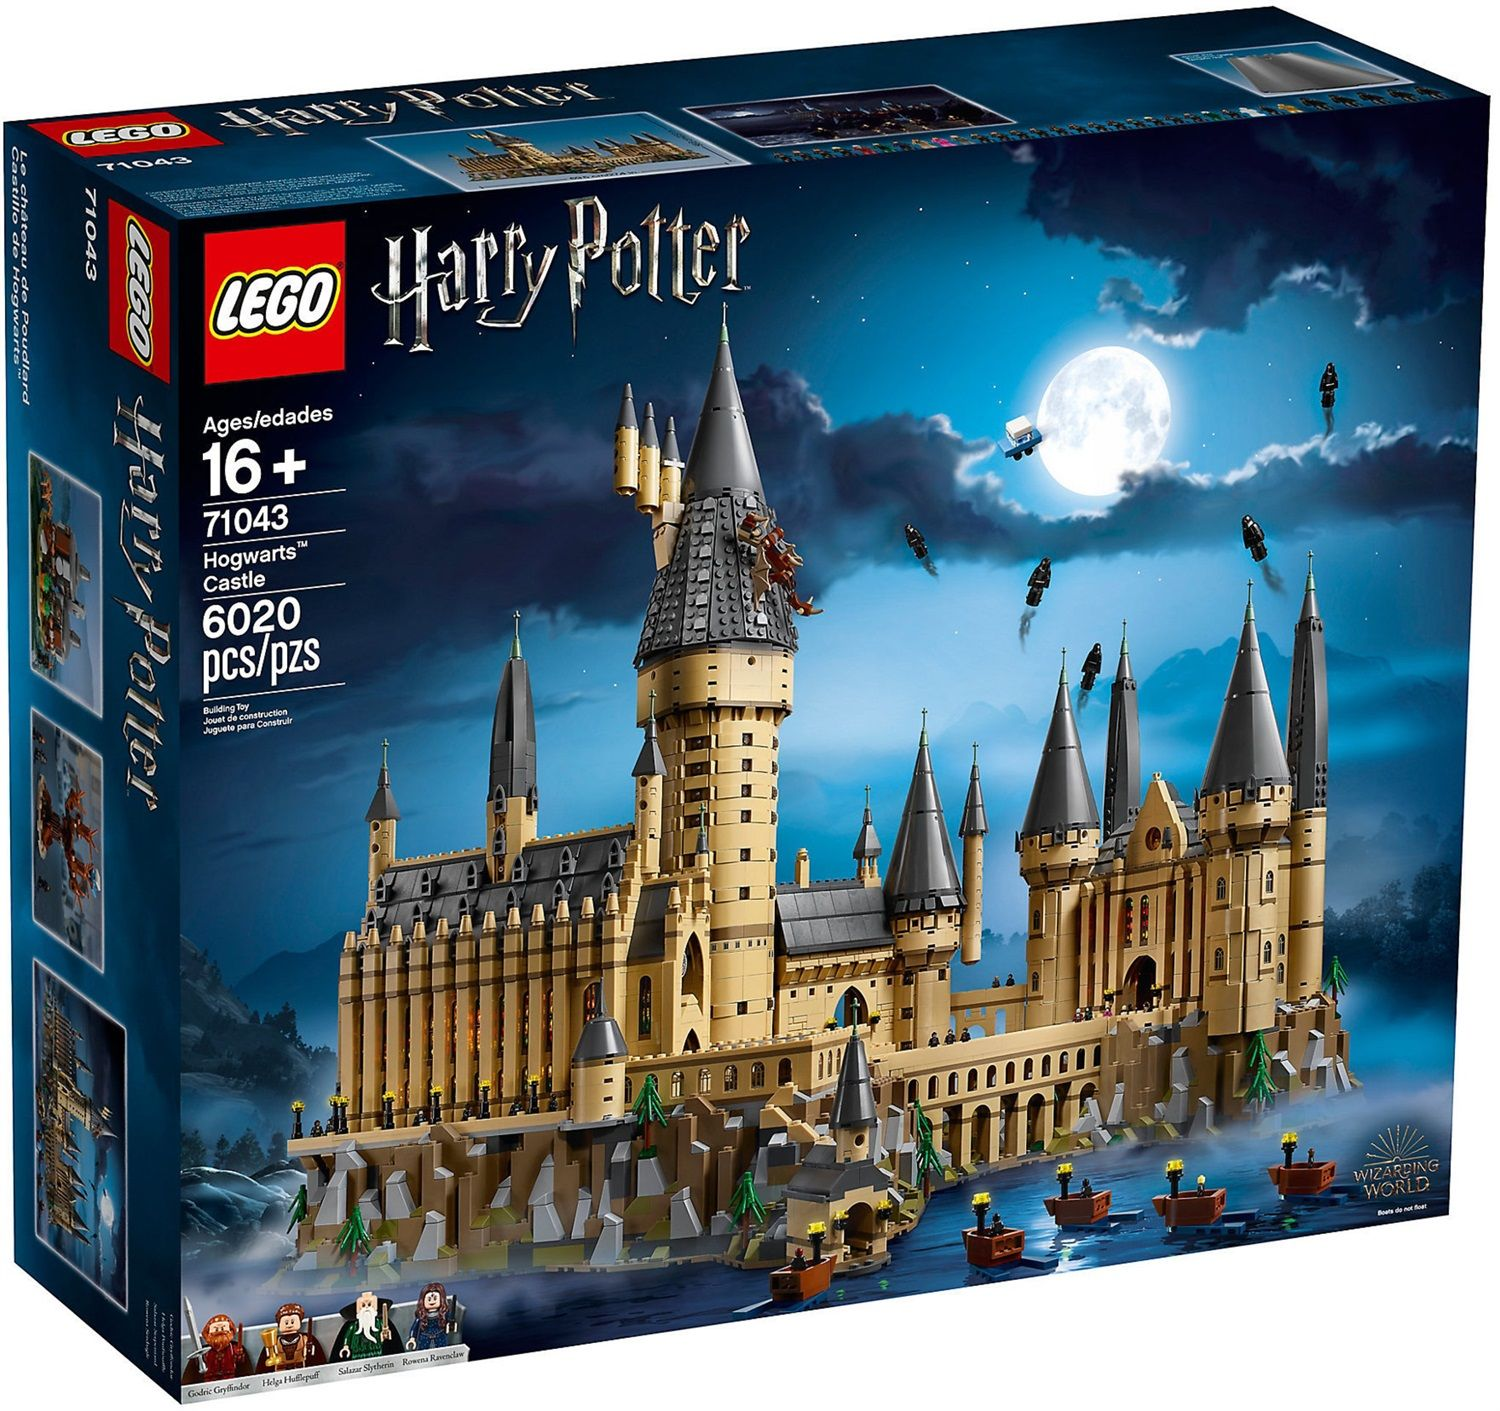 Lego Harry Potter 71043 Castello di Hogwarts